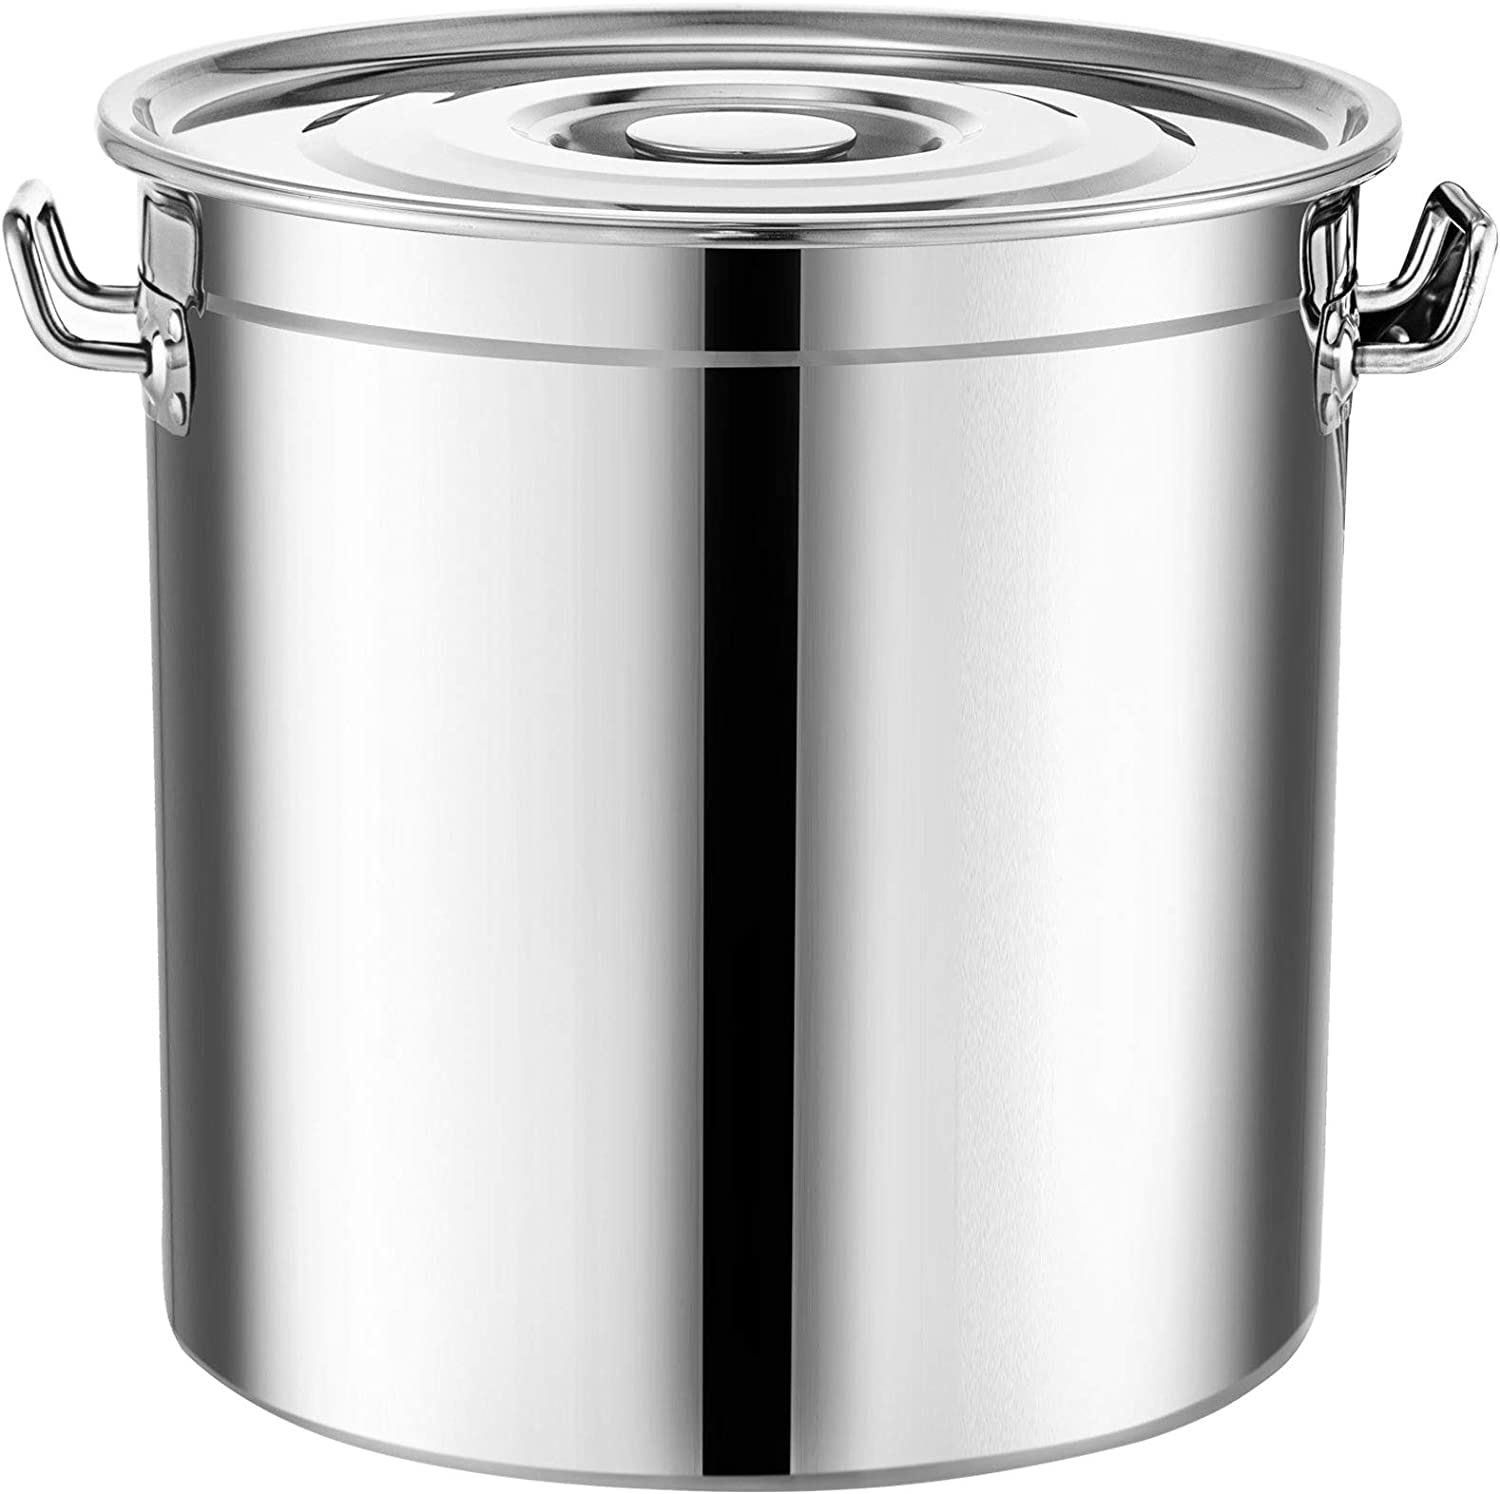 Mophorn New color Brew kettle Stockpot Houston Mall with Stainless Lid Bot Brewin Steel